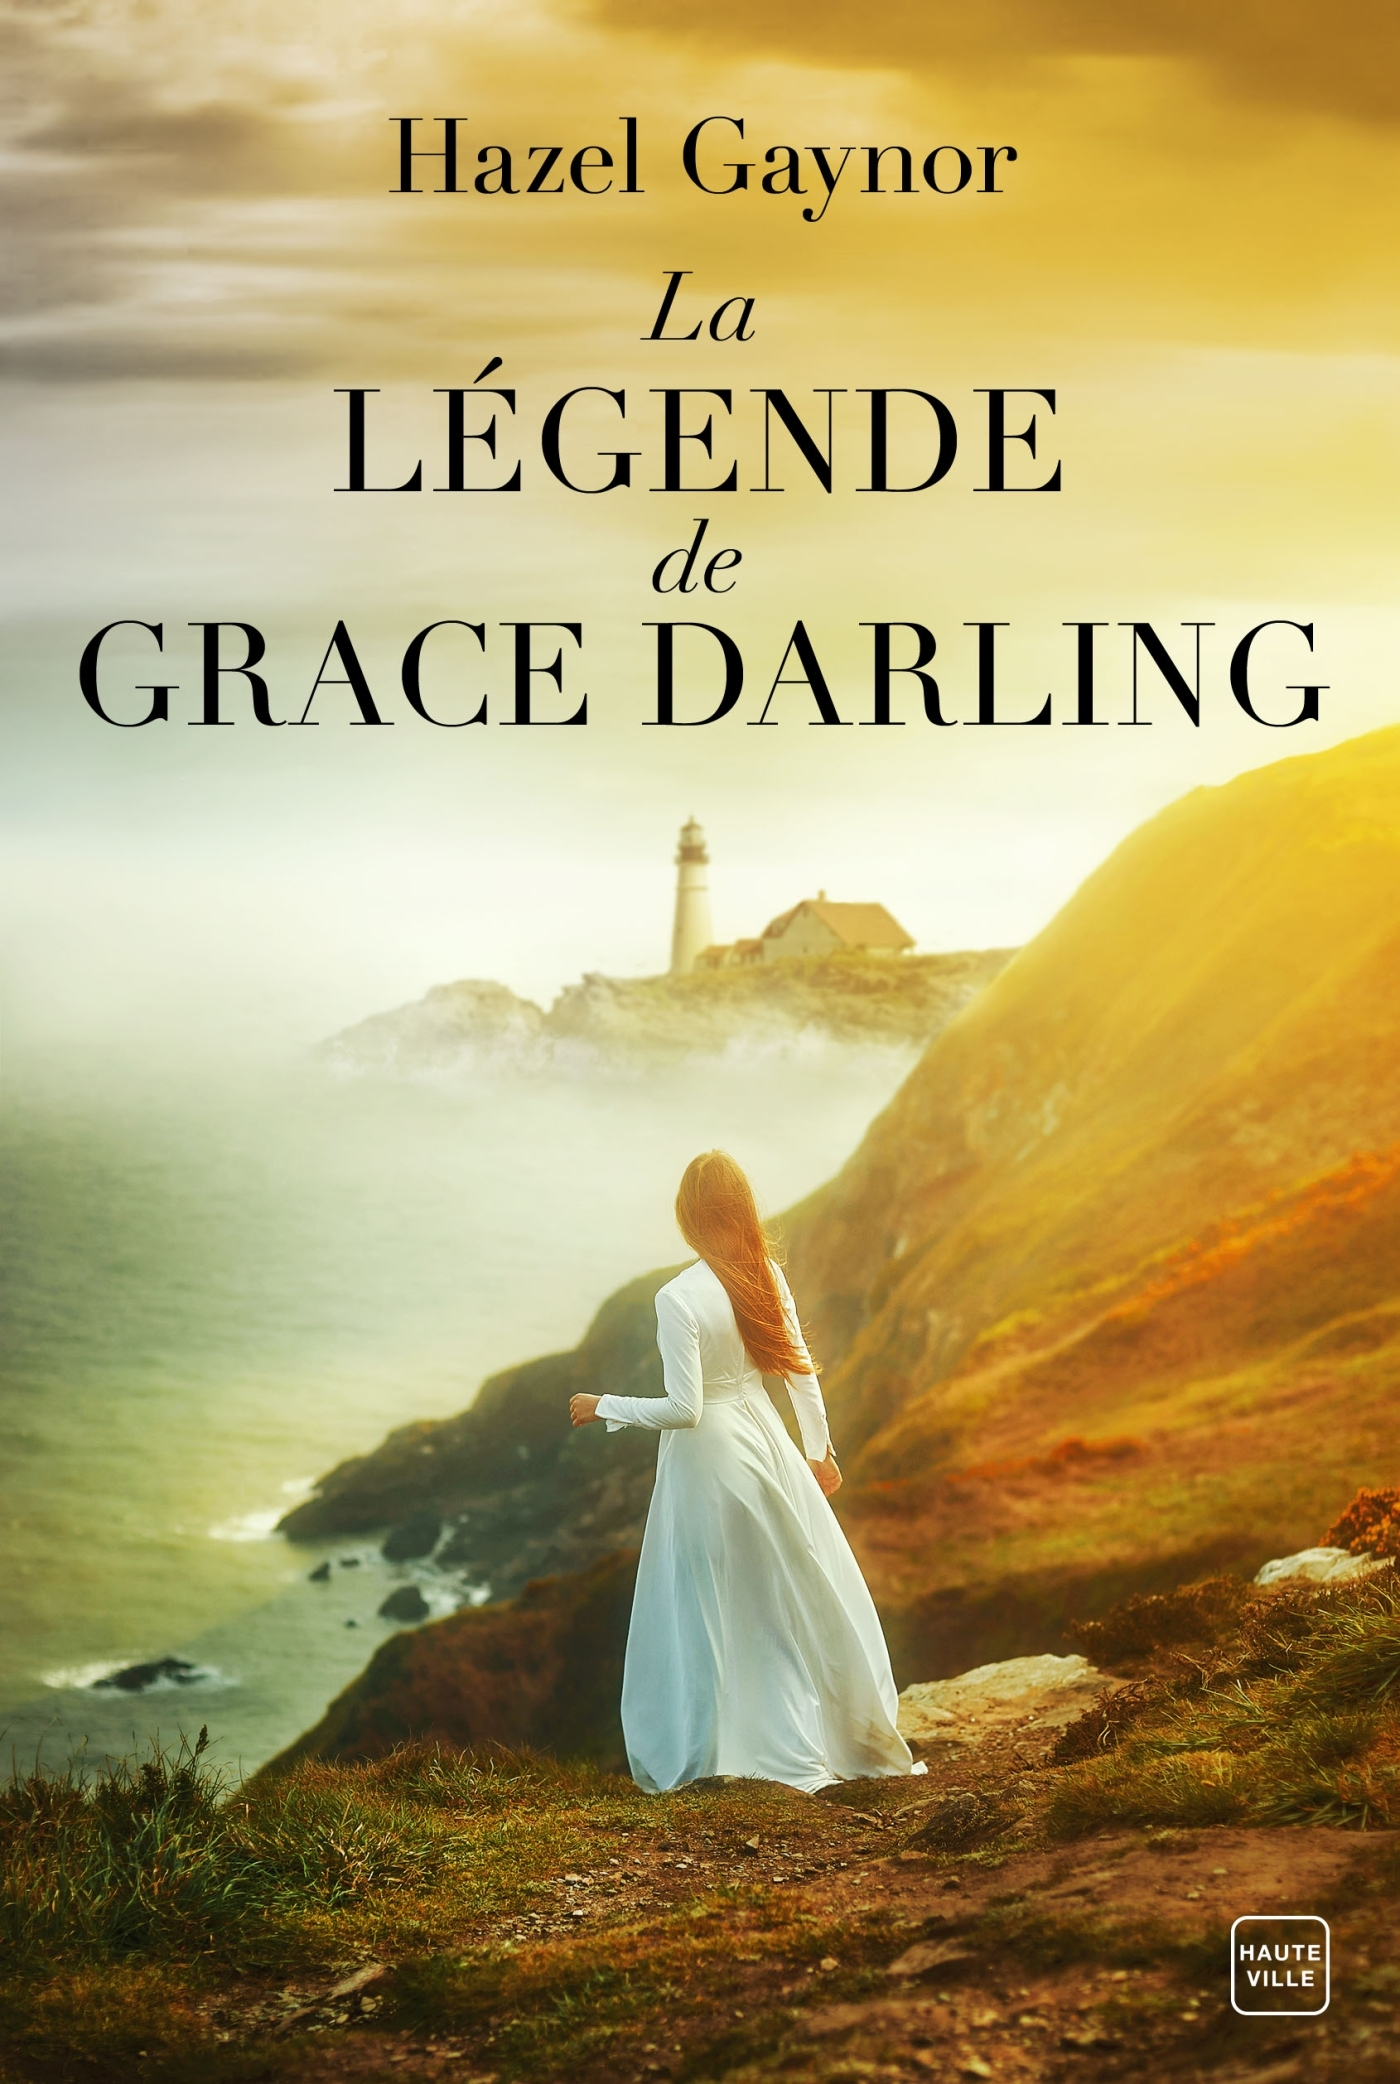 LA LEGENDE DE GRACE DARLING